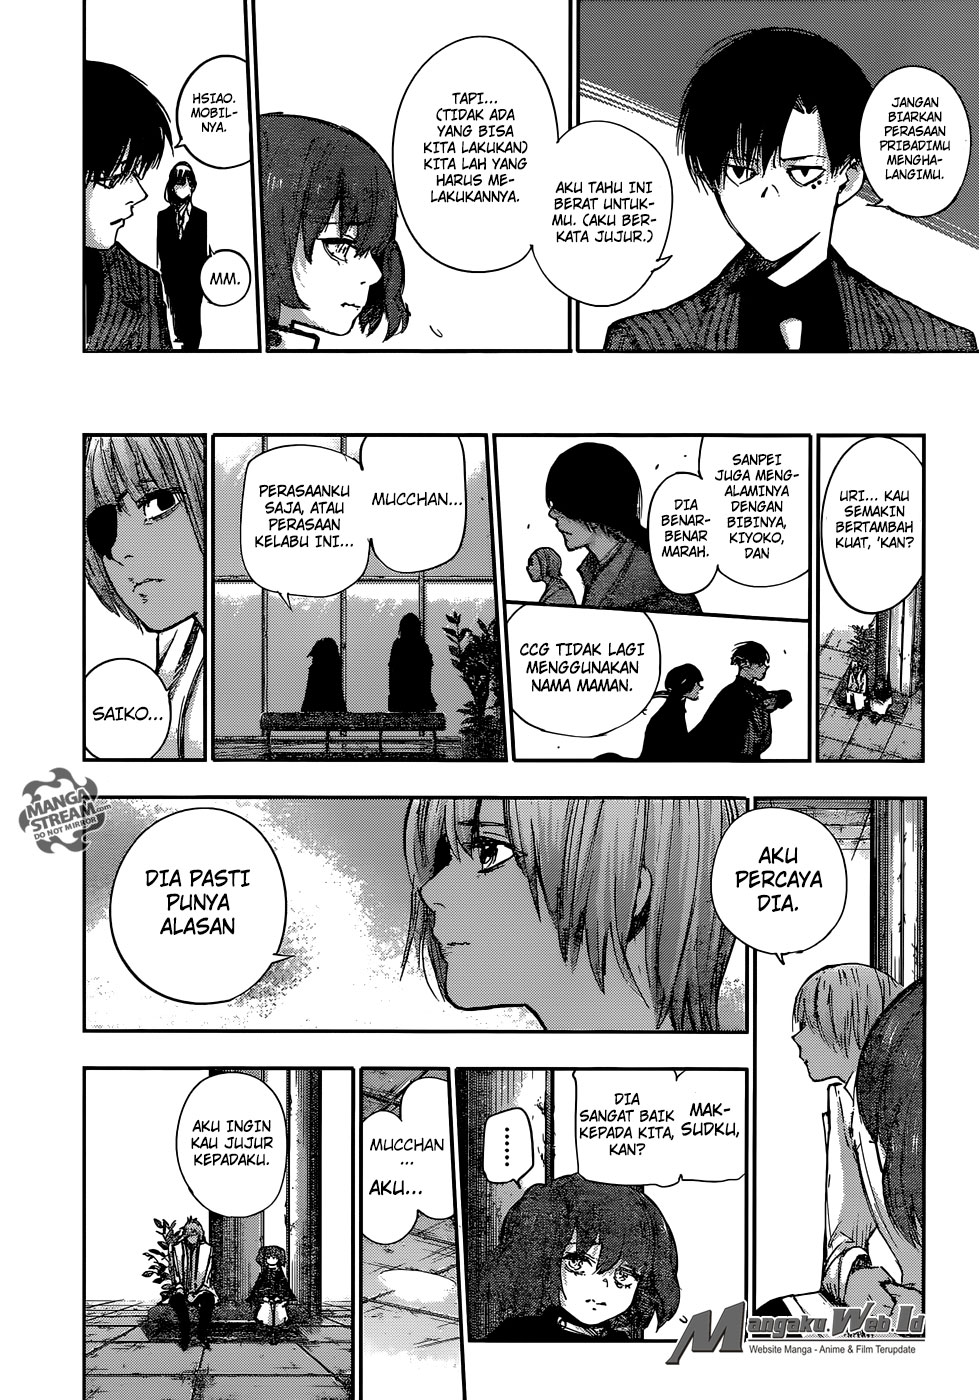 Tokyo Ghoul:re Chapter 100-15